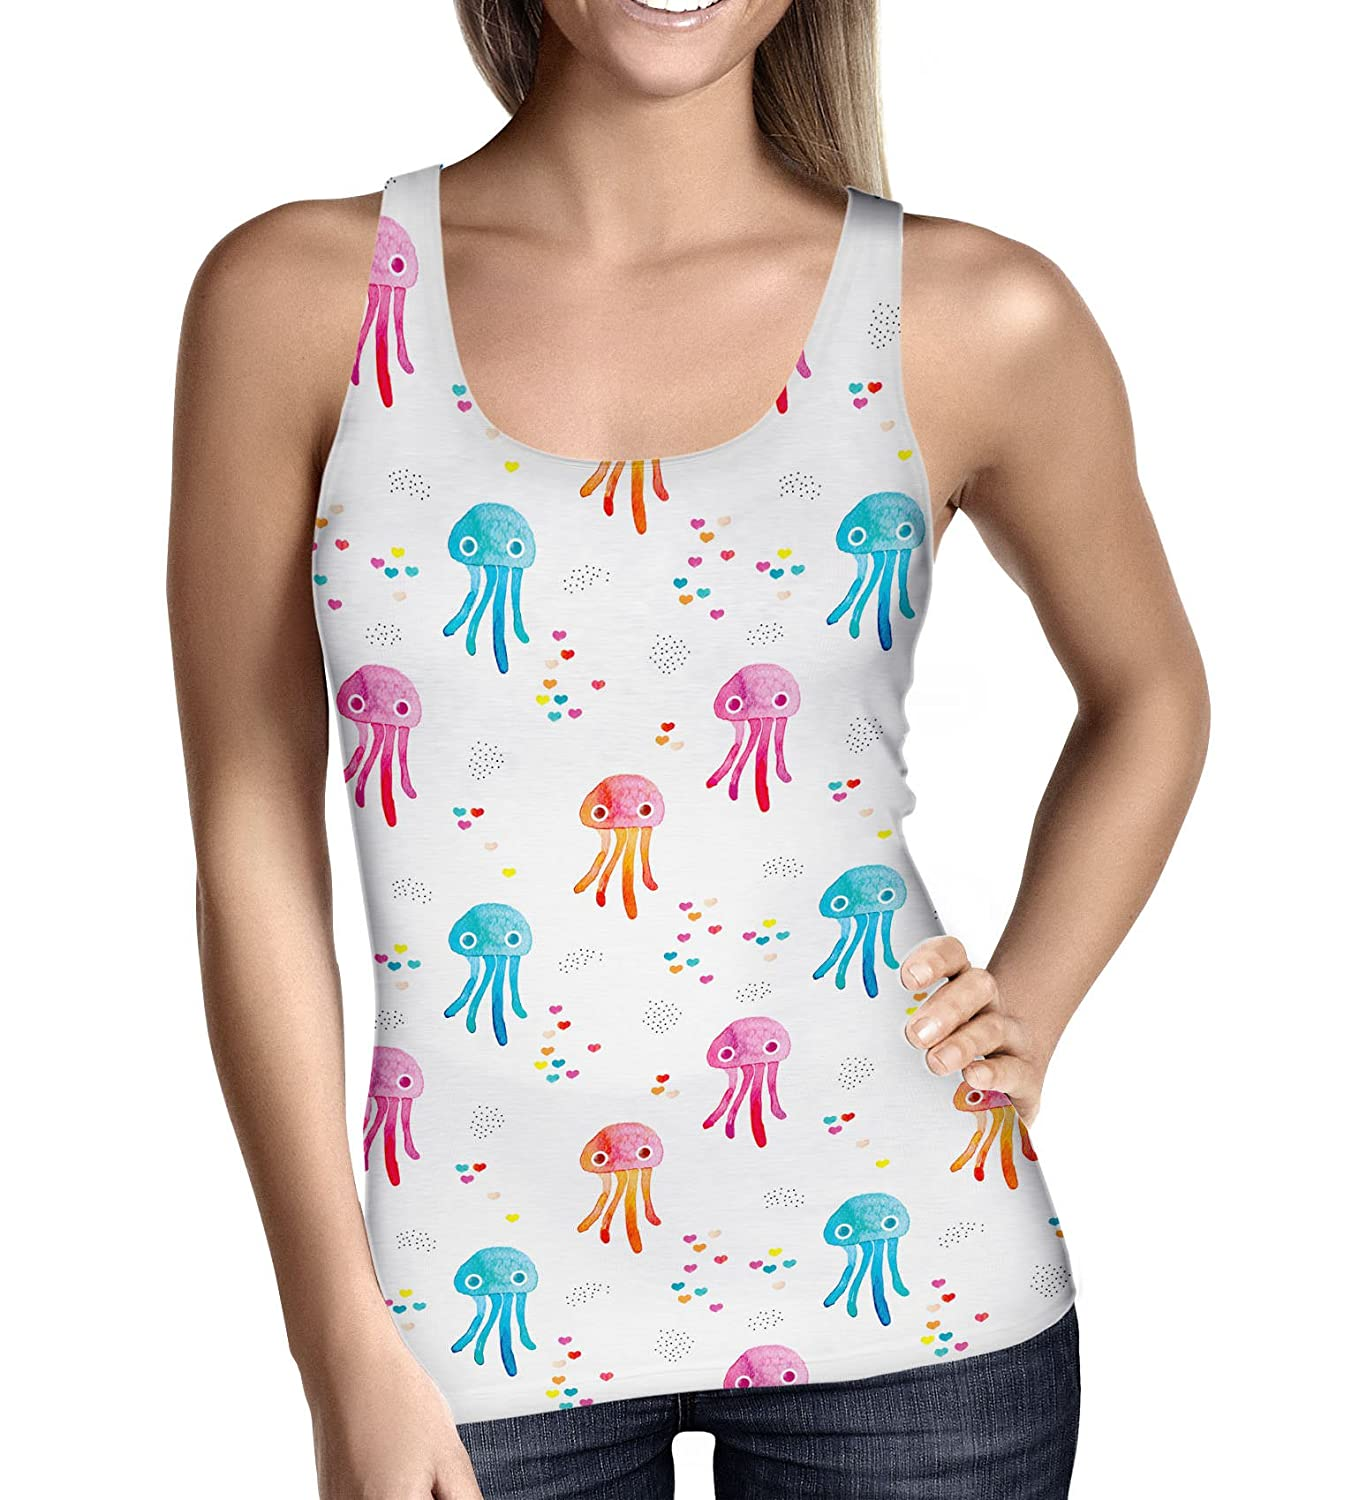 Watercolor Jelly Fish Ladies Tank Top Gym Workout